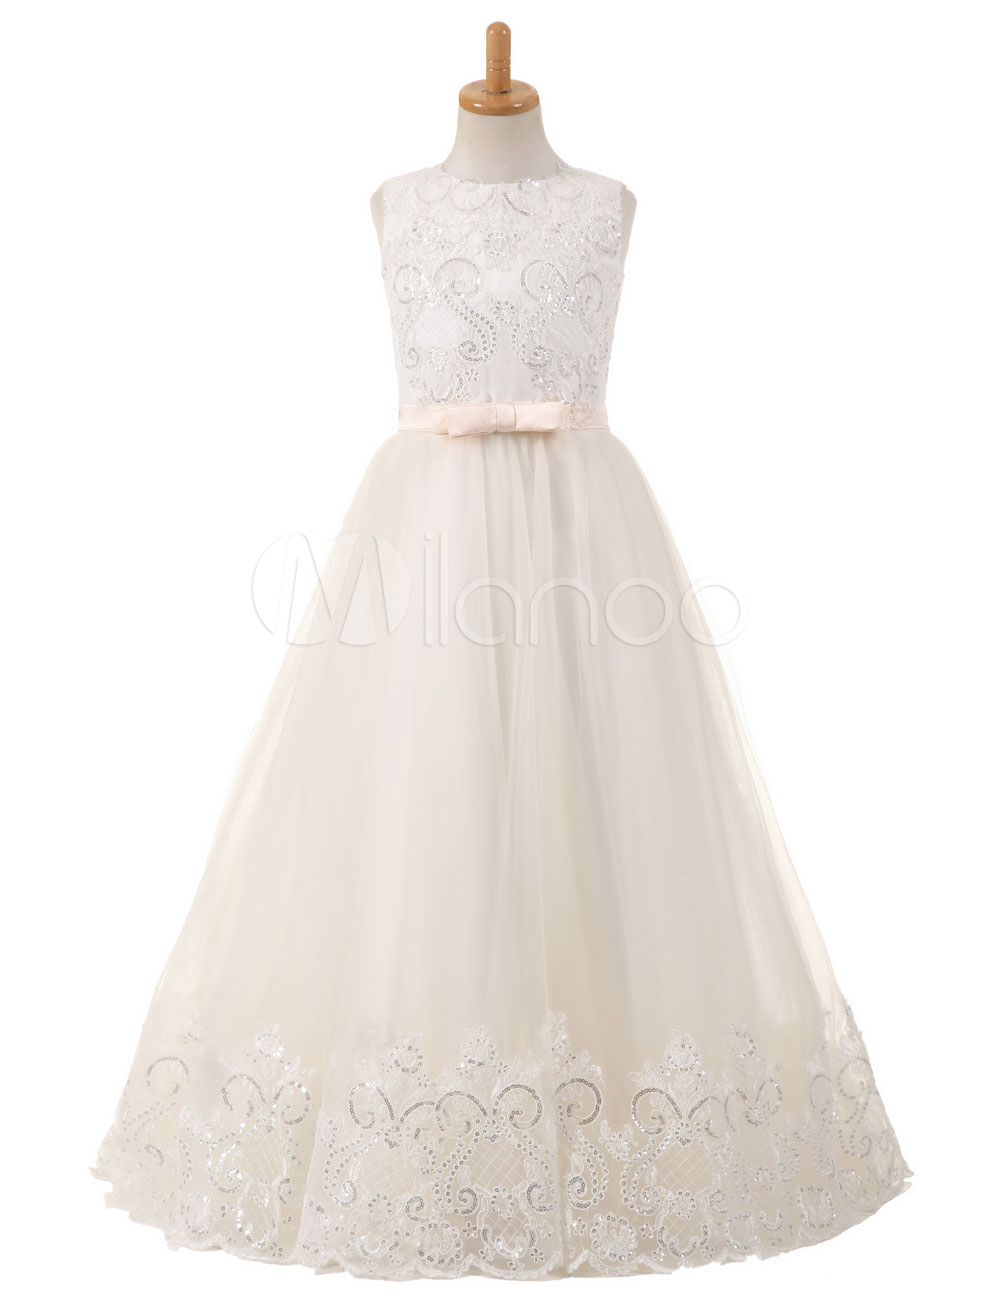 Flower Girl Dresses Tulle Bows Lace Sequins Applique Pageant Dresses Round Neck Sleeveless Champagne Floor Length Party Dress